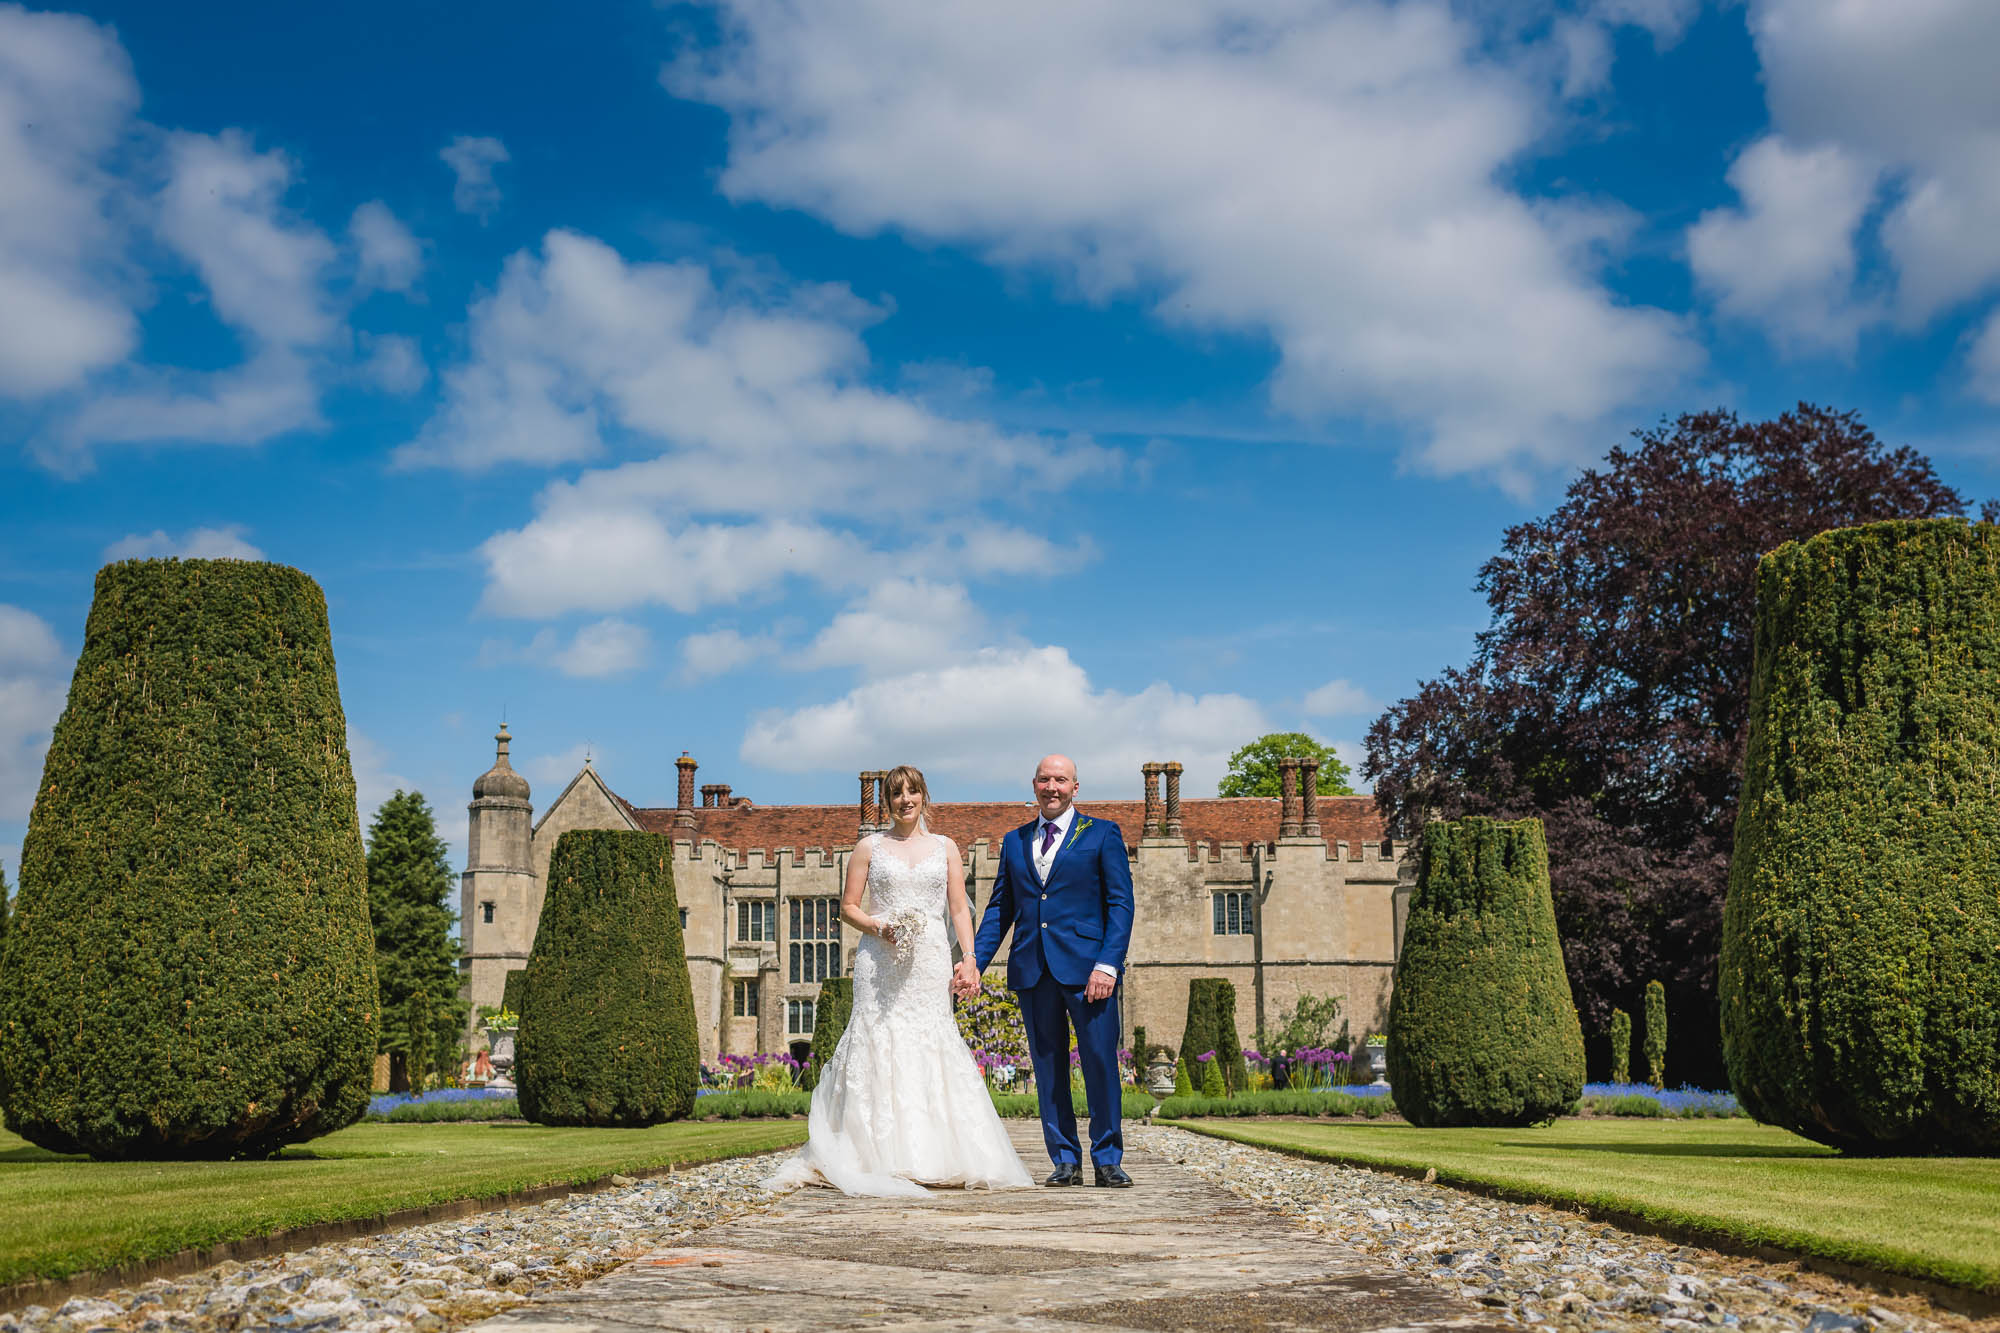 Hengrave Hall wedding photography – Rachael & John